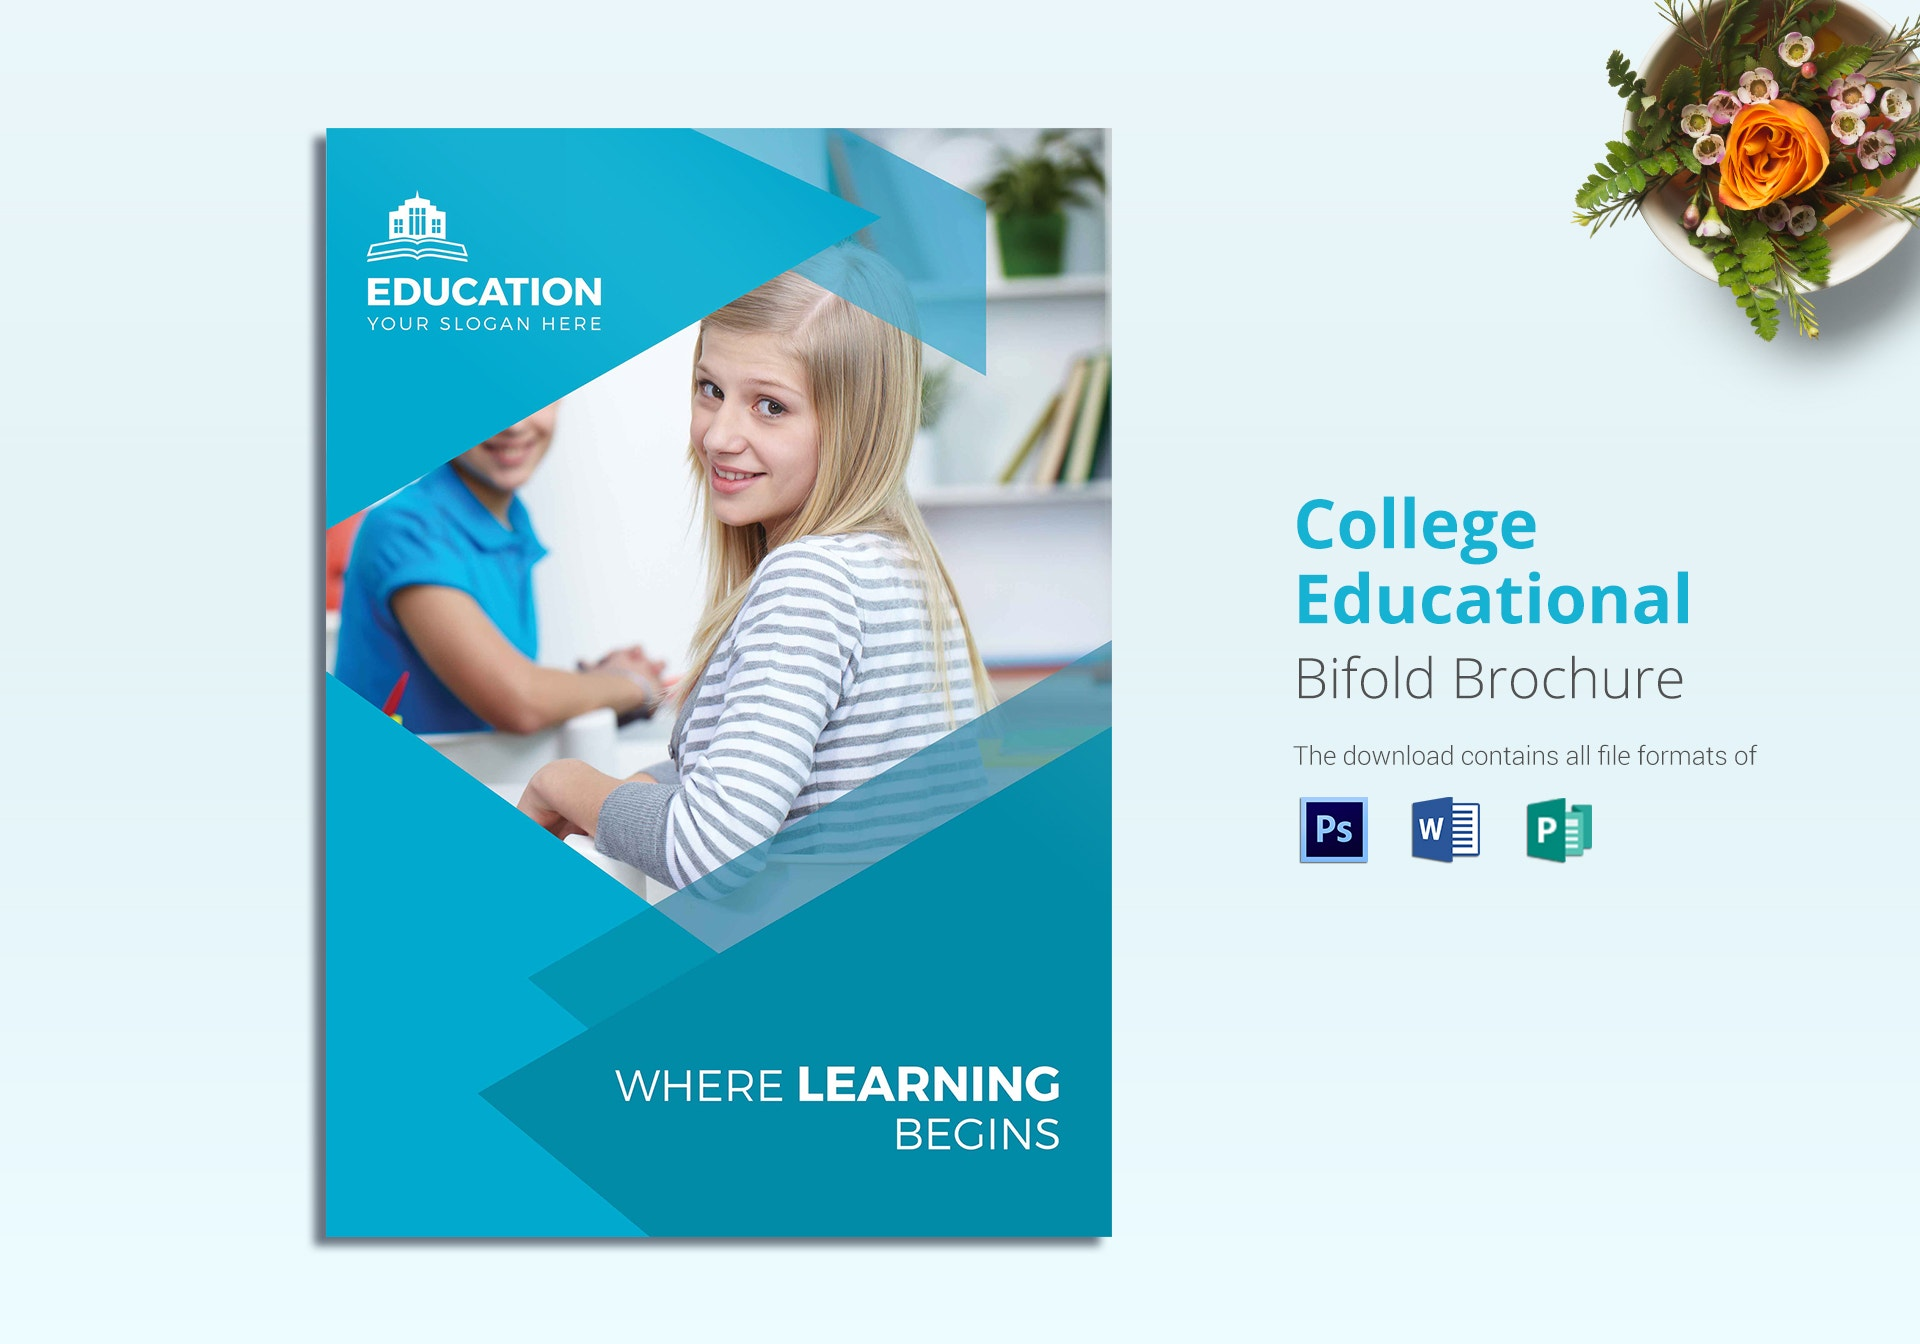 college educational bifold brochure template